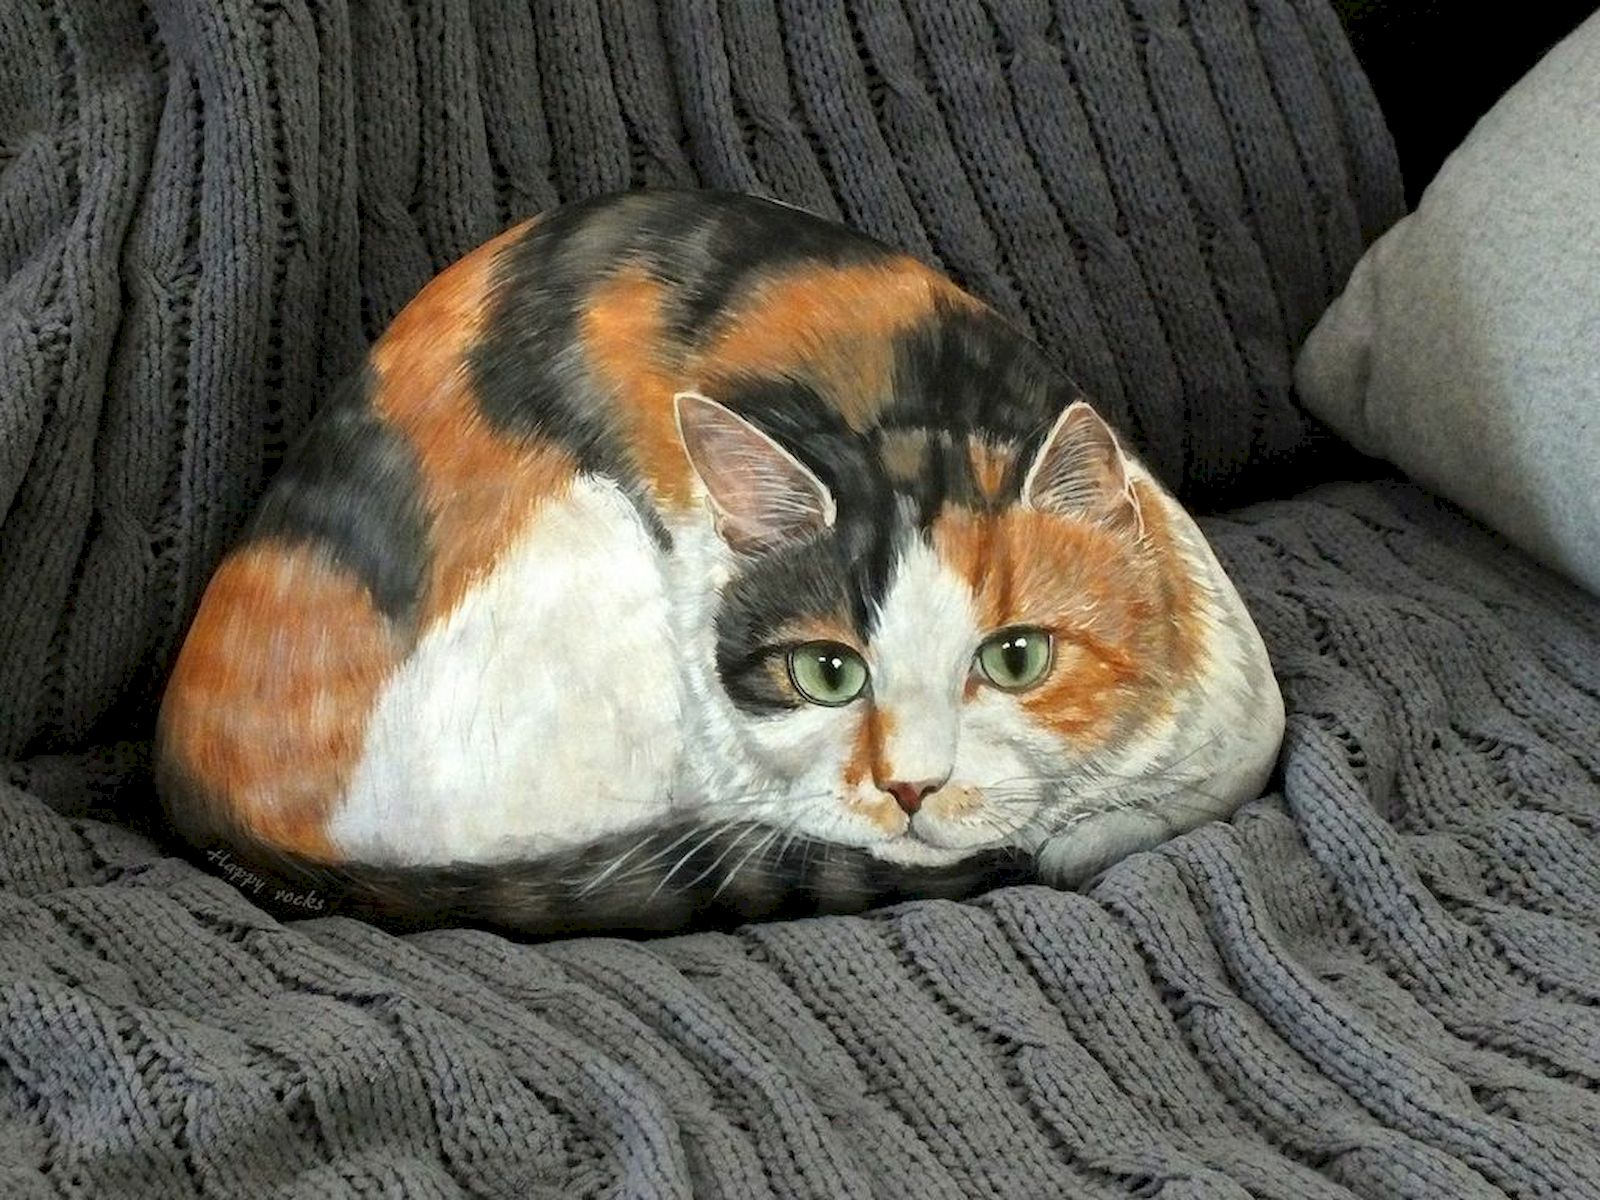 50 Best DIY Painted Rocks Animals Cats for Summer Ideas (12)